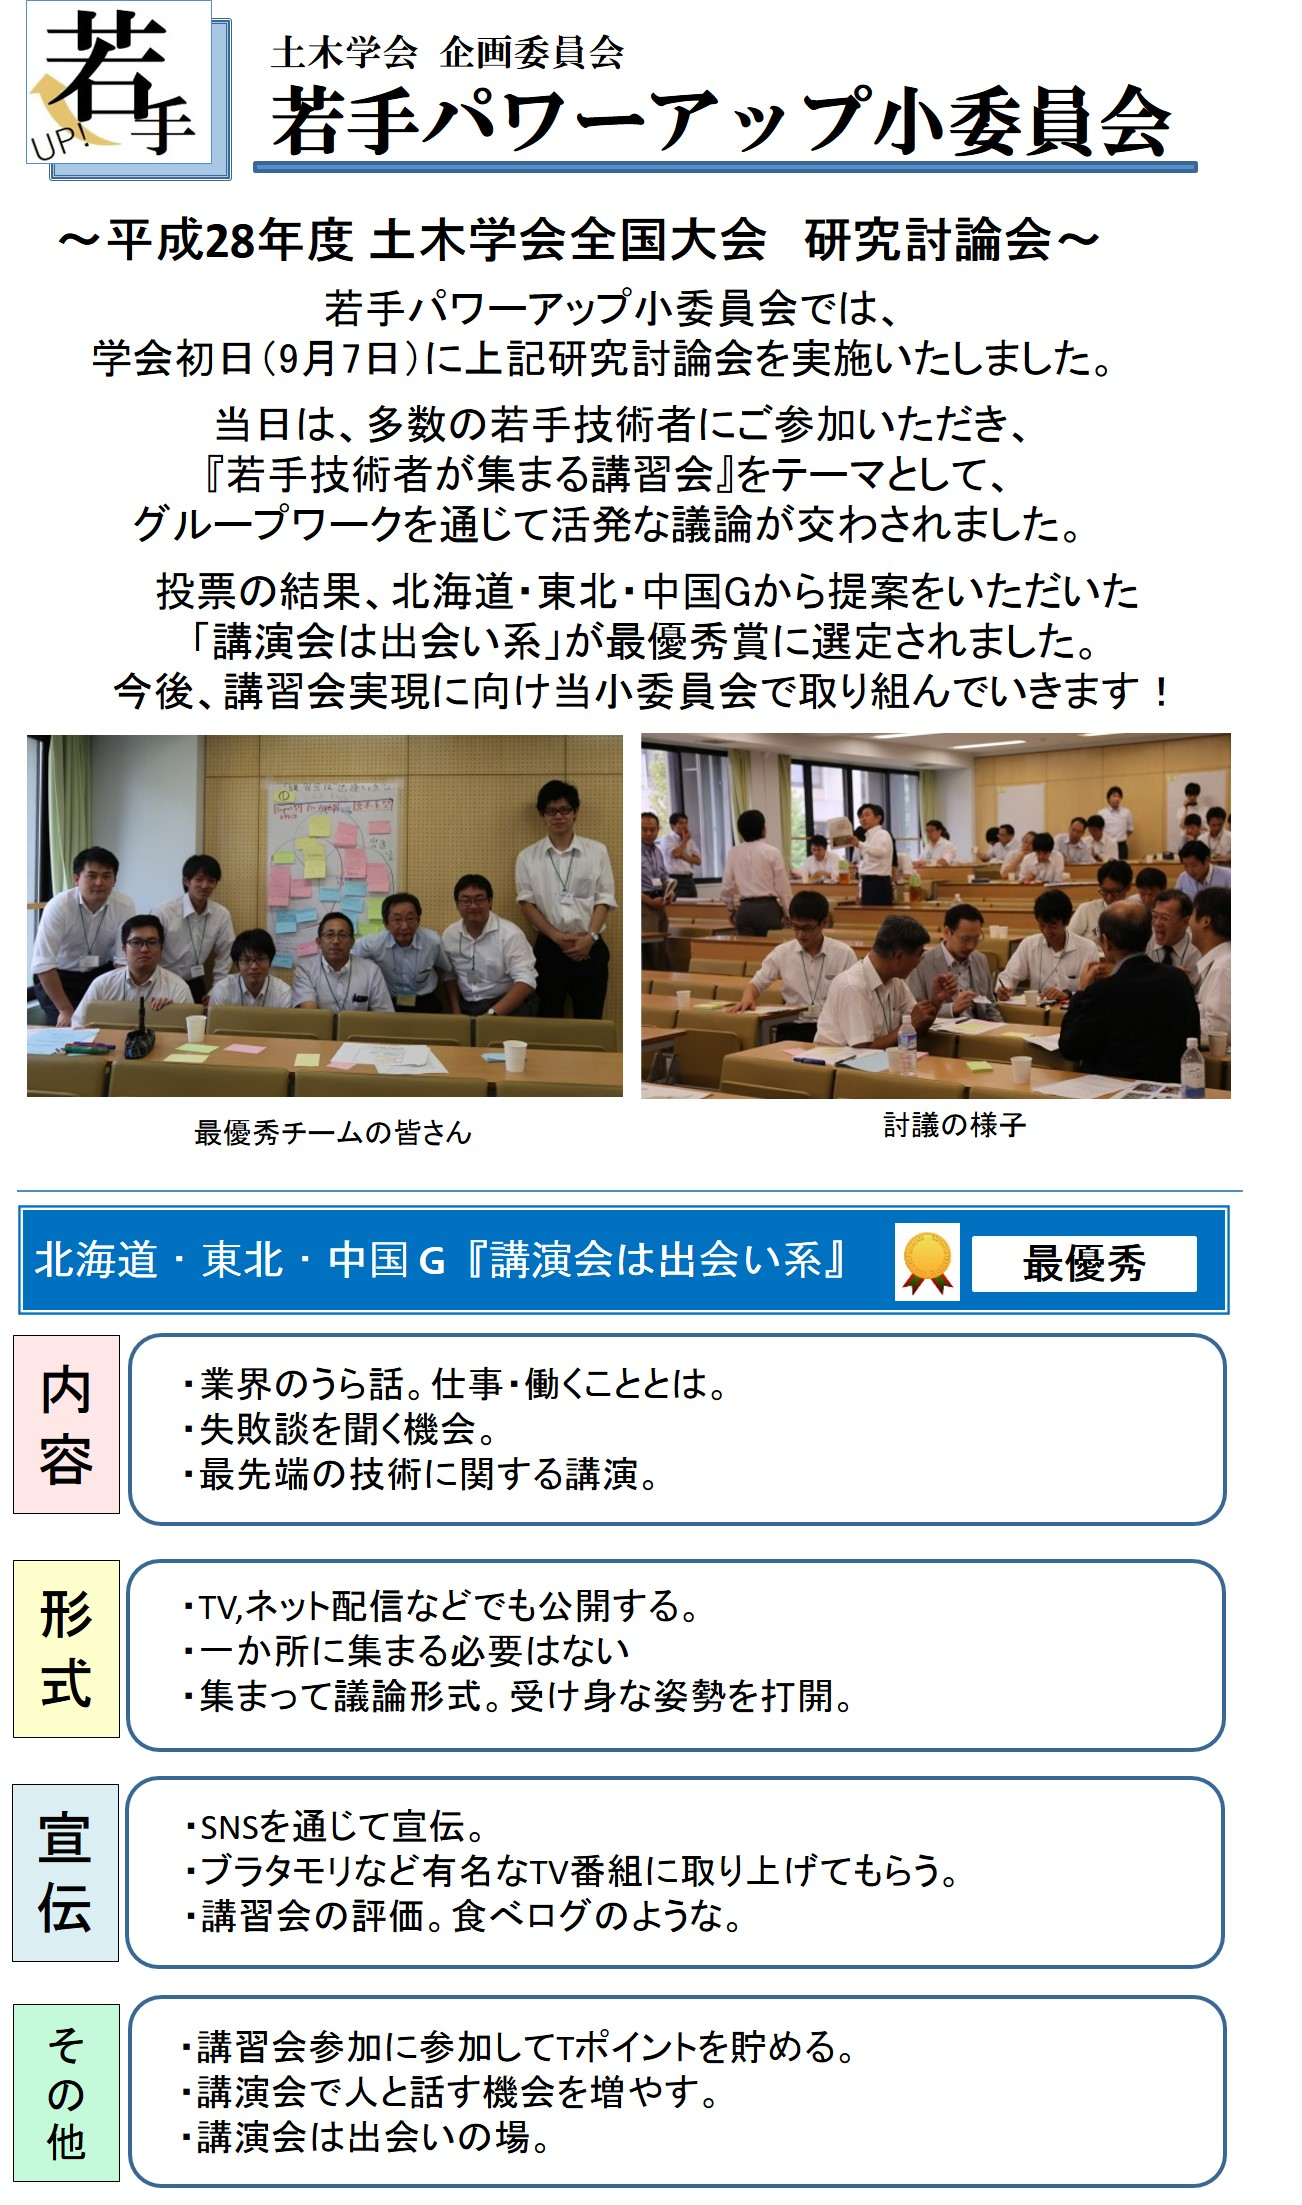 http://committees.jsce.or.jp/kikaku03/system/files/wakateactivity-3.jpg